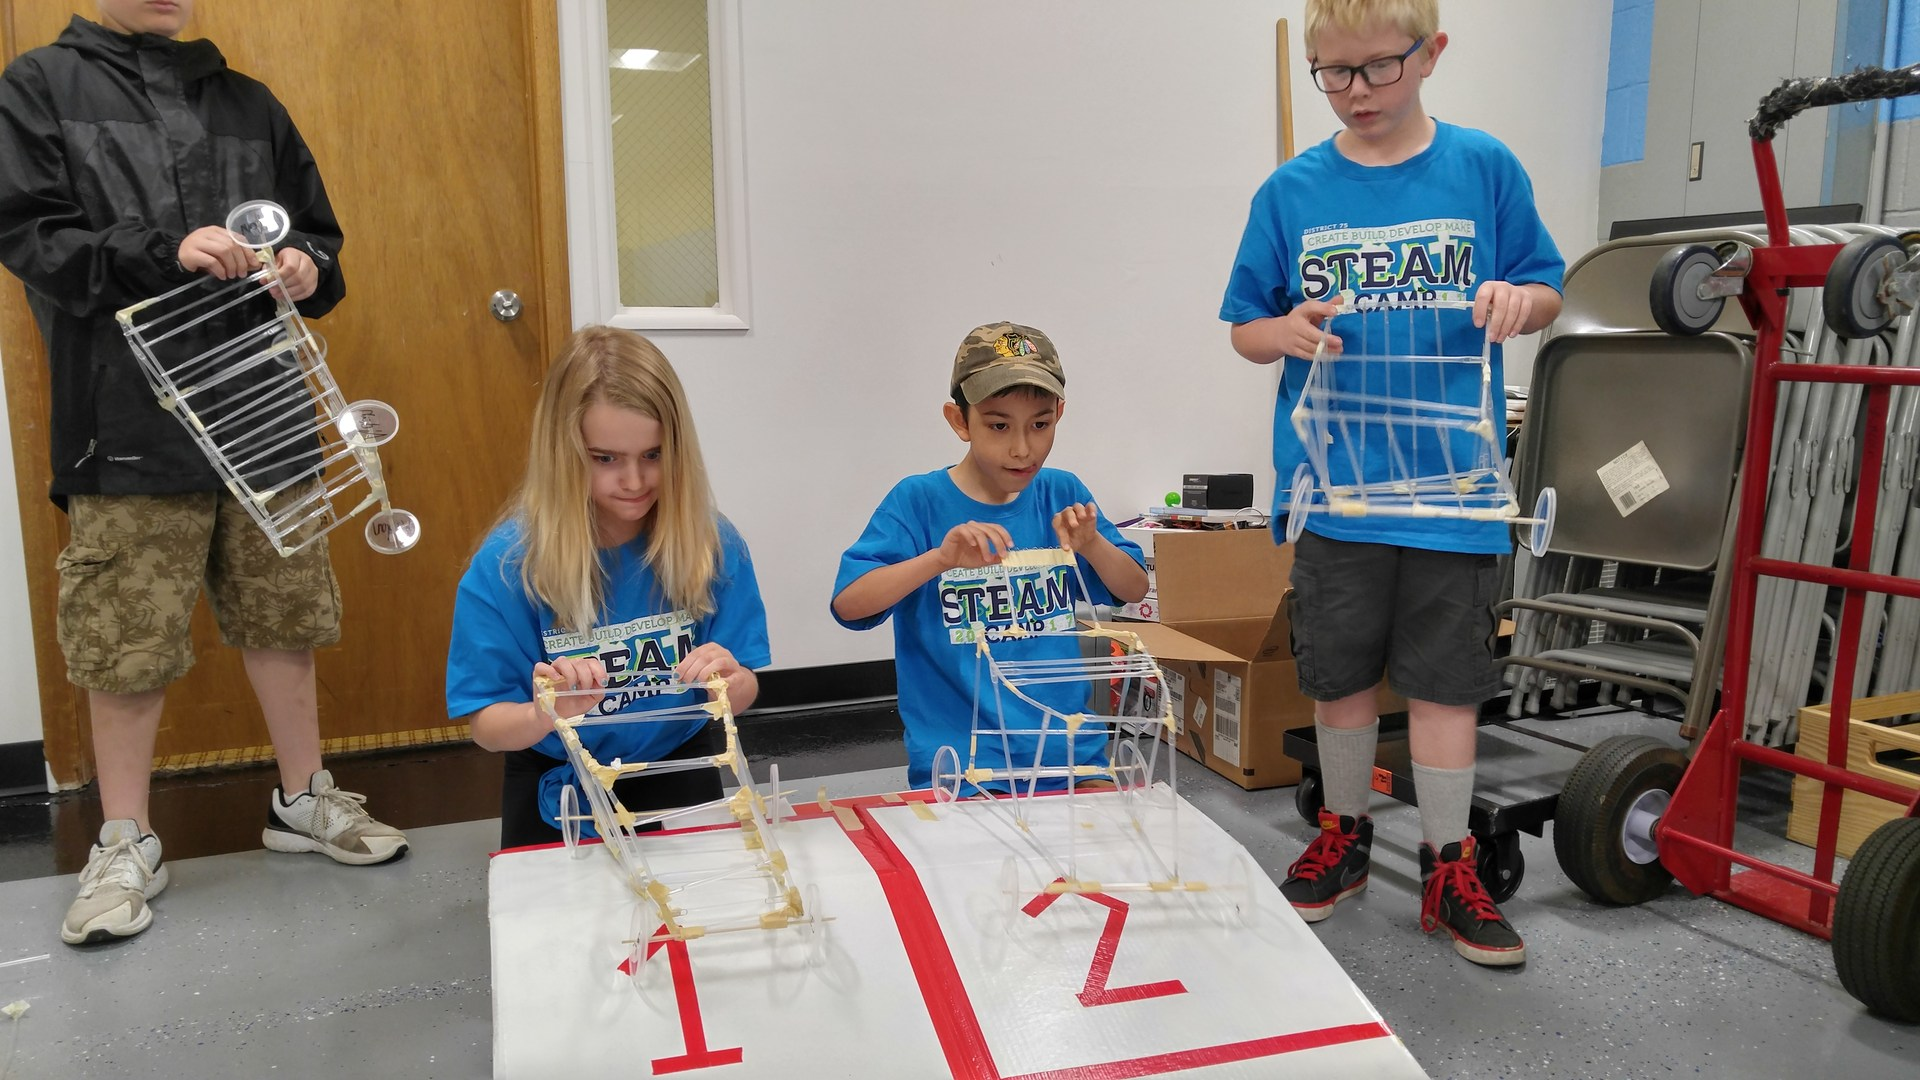 Steam Camp (Rockets, Robots, Roller Coasters, Race Cars)